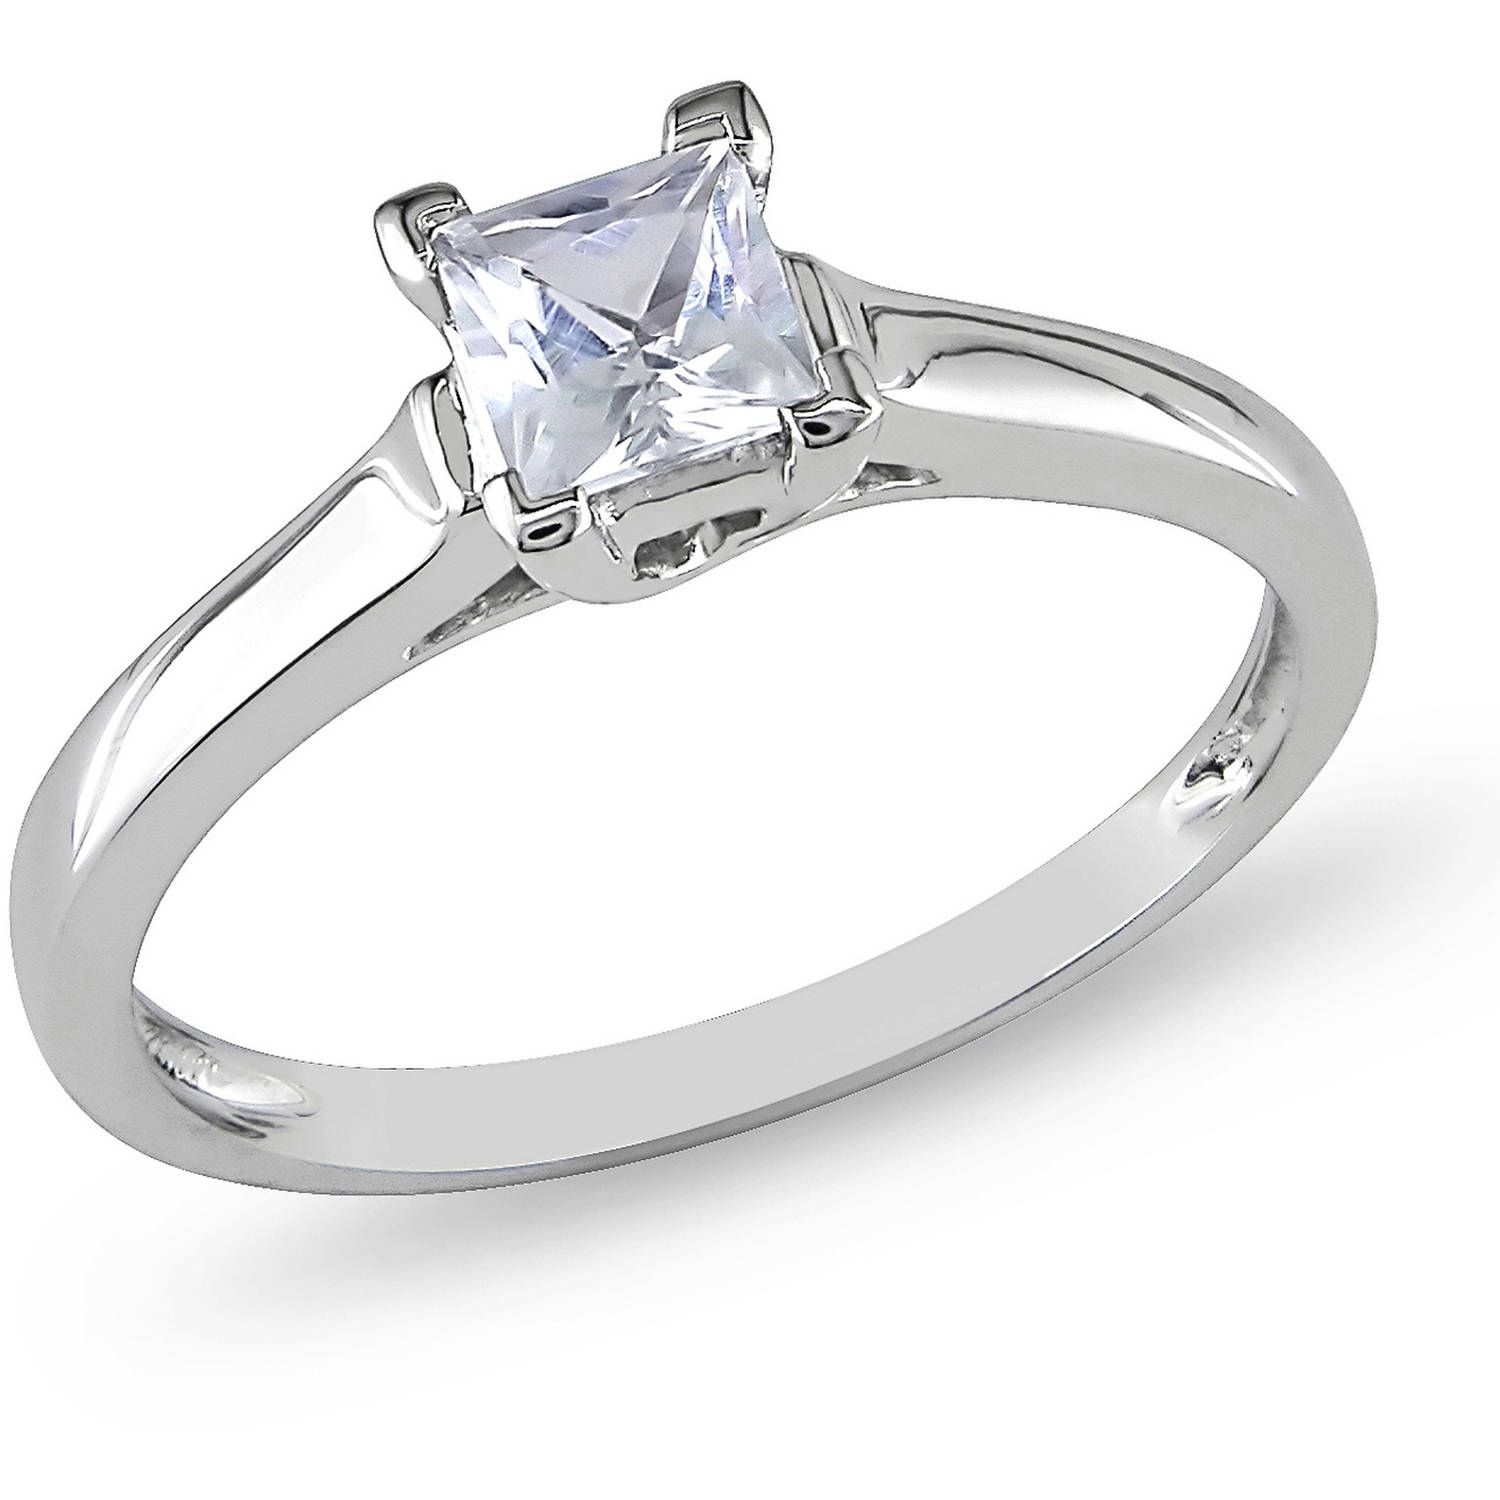 ring product free gold cut solitaire shipping jewelry watches sapphire miadora today white square created overstock